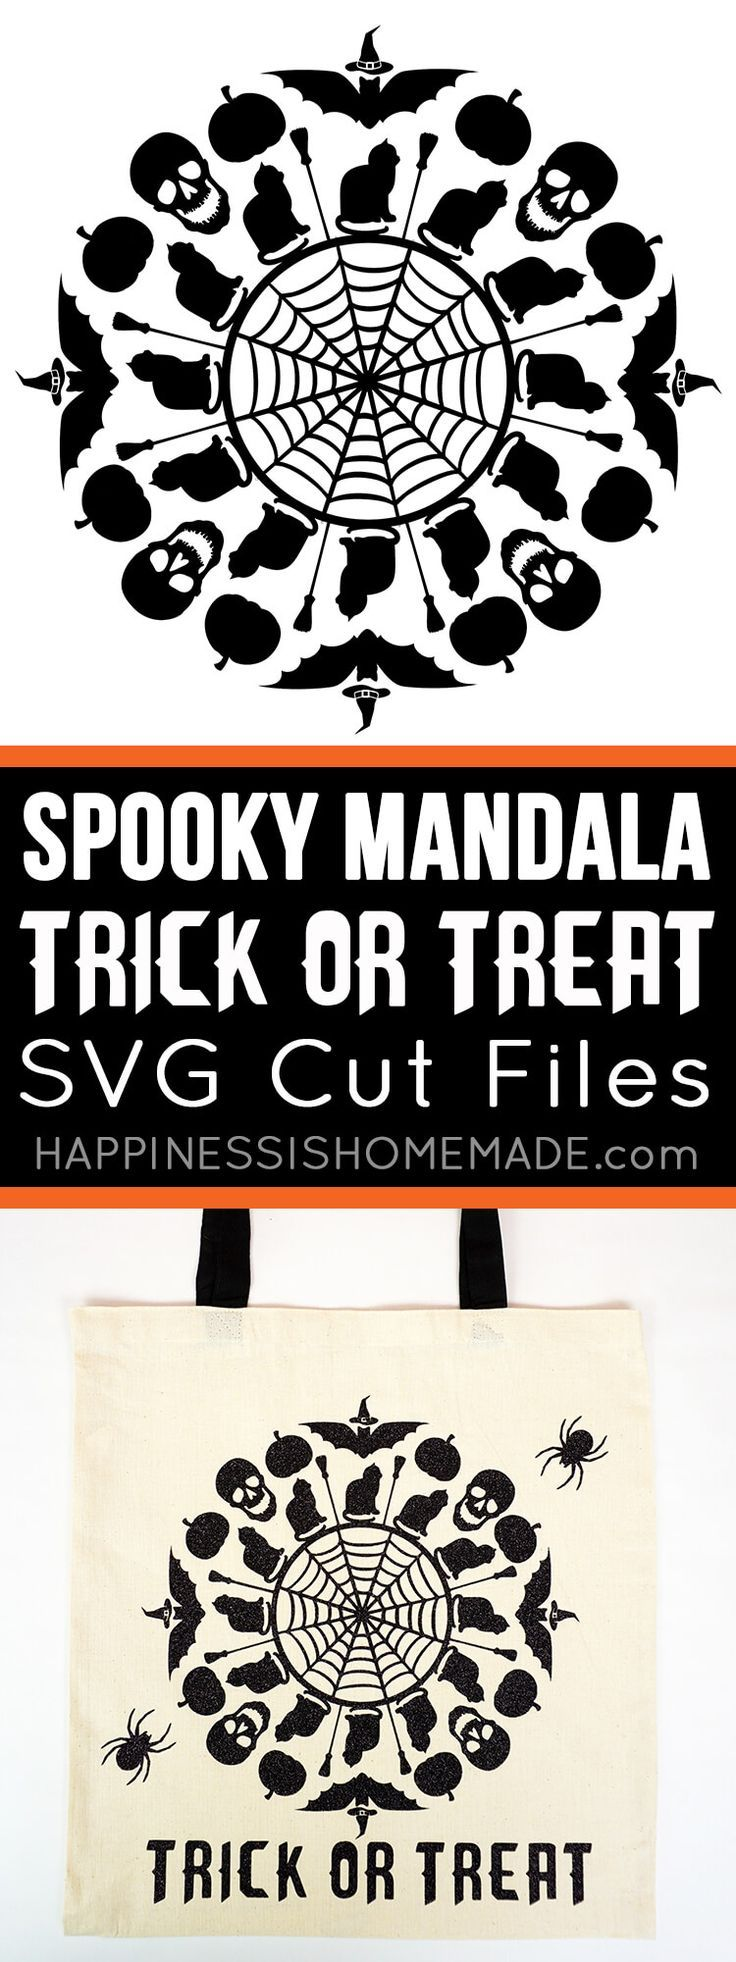 Use these awesome Halloween SVG files to make a Spooky Mandala Trick or Treat Bag! Plus, get an awesome bundle deal on TEN incredible Halloween SVG files – on SALE and available ONLY for the month of September! Perfect for décor, mugs, totes, t-shirts, and anything else you can imagine!